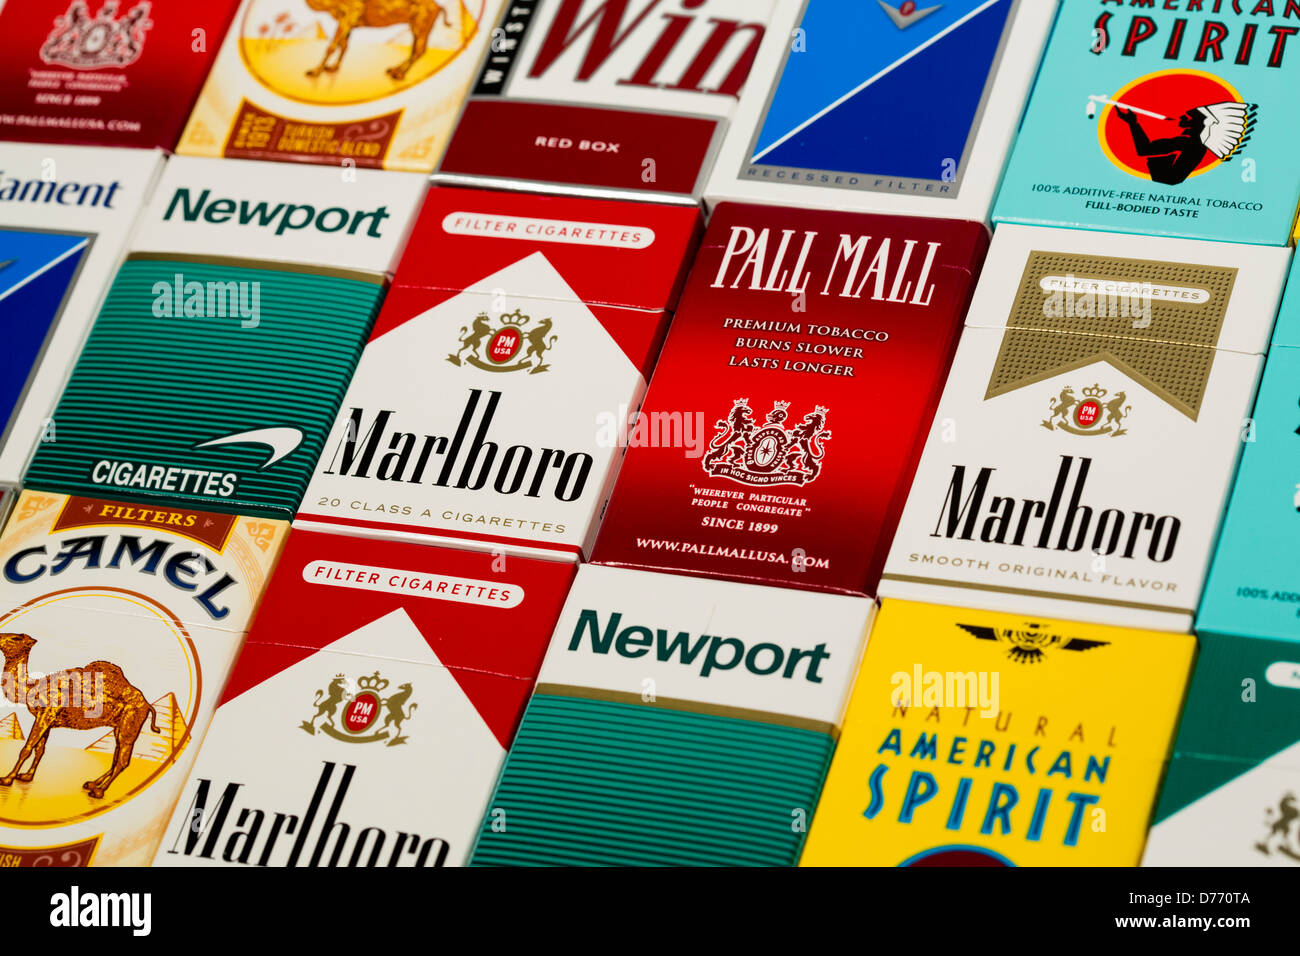 How much do duty free cigarettes Marlboro cost at New York